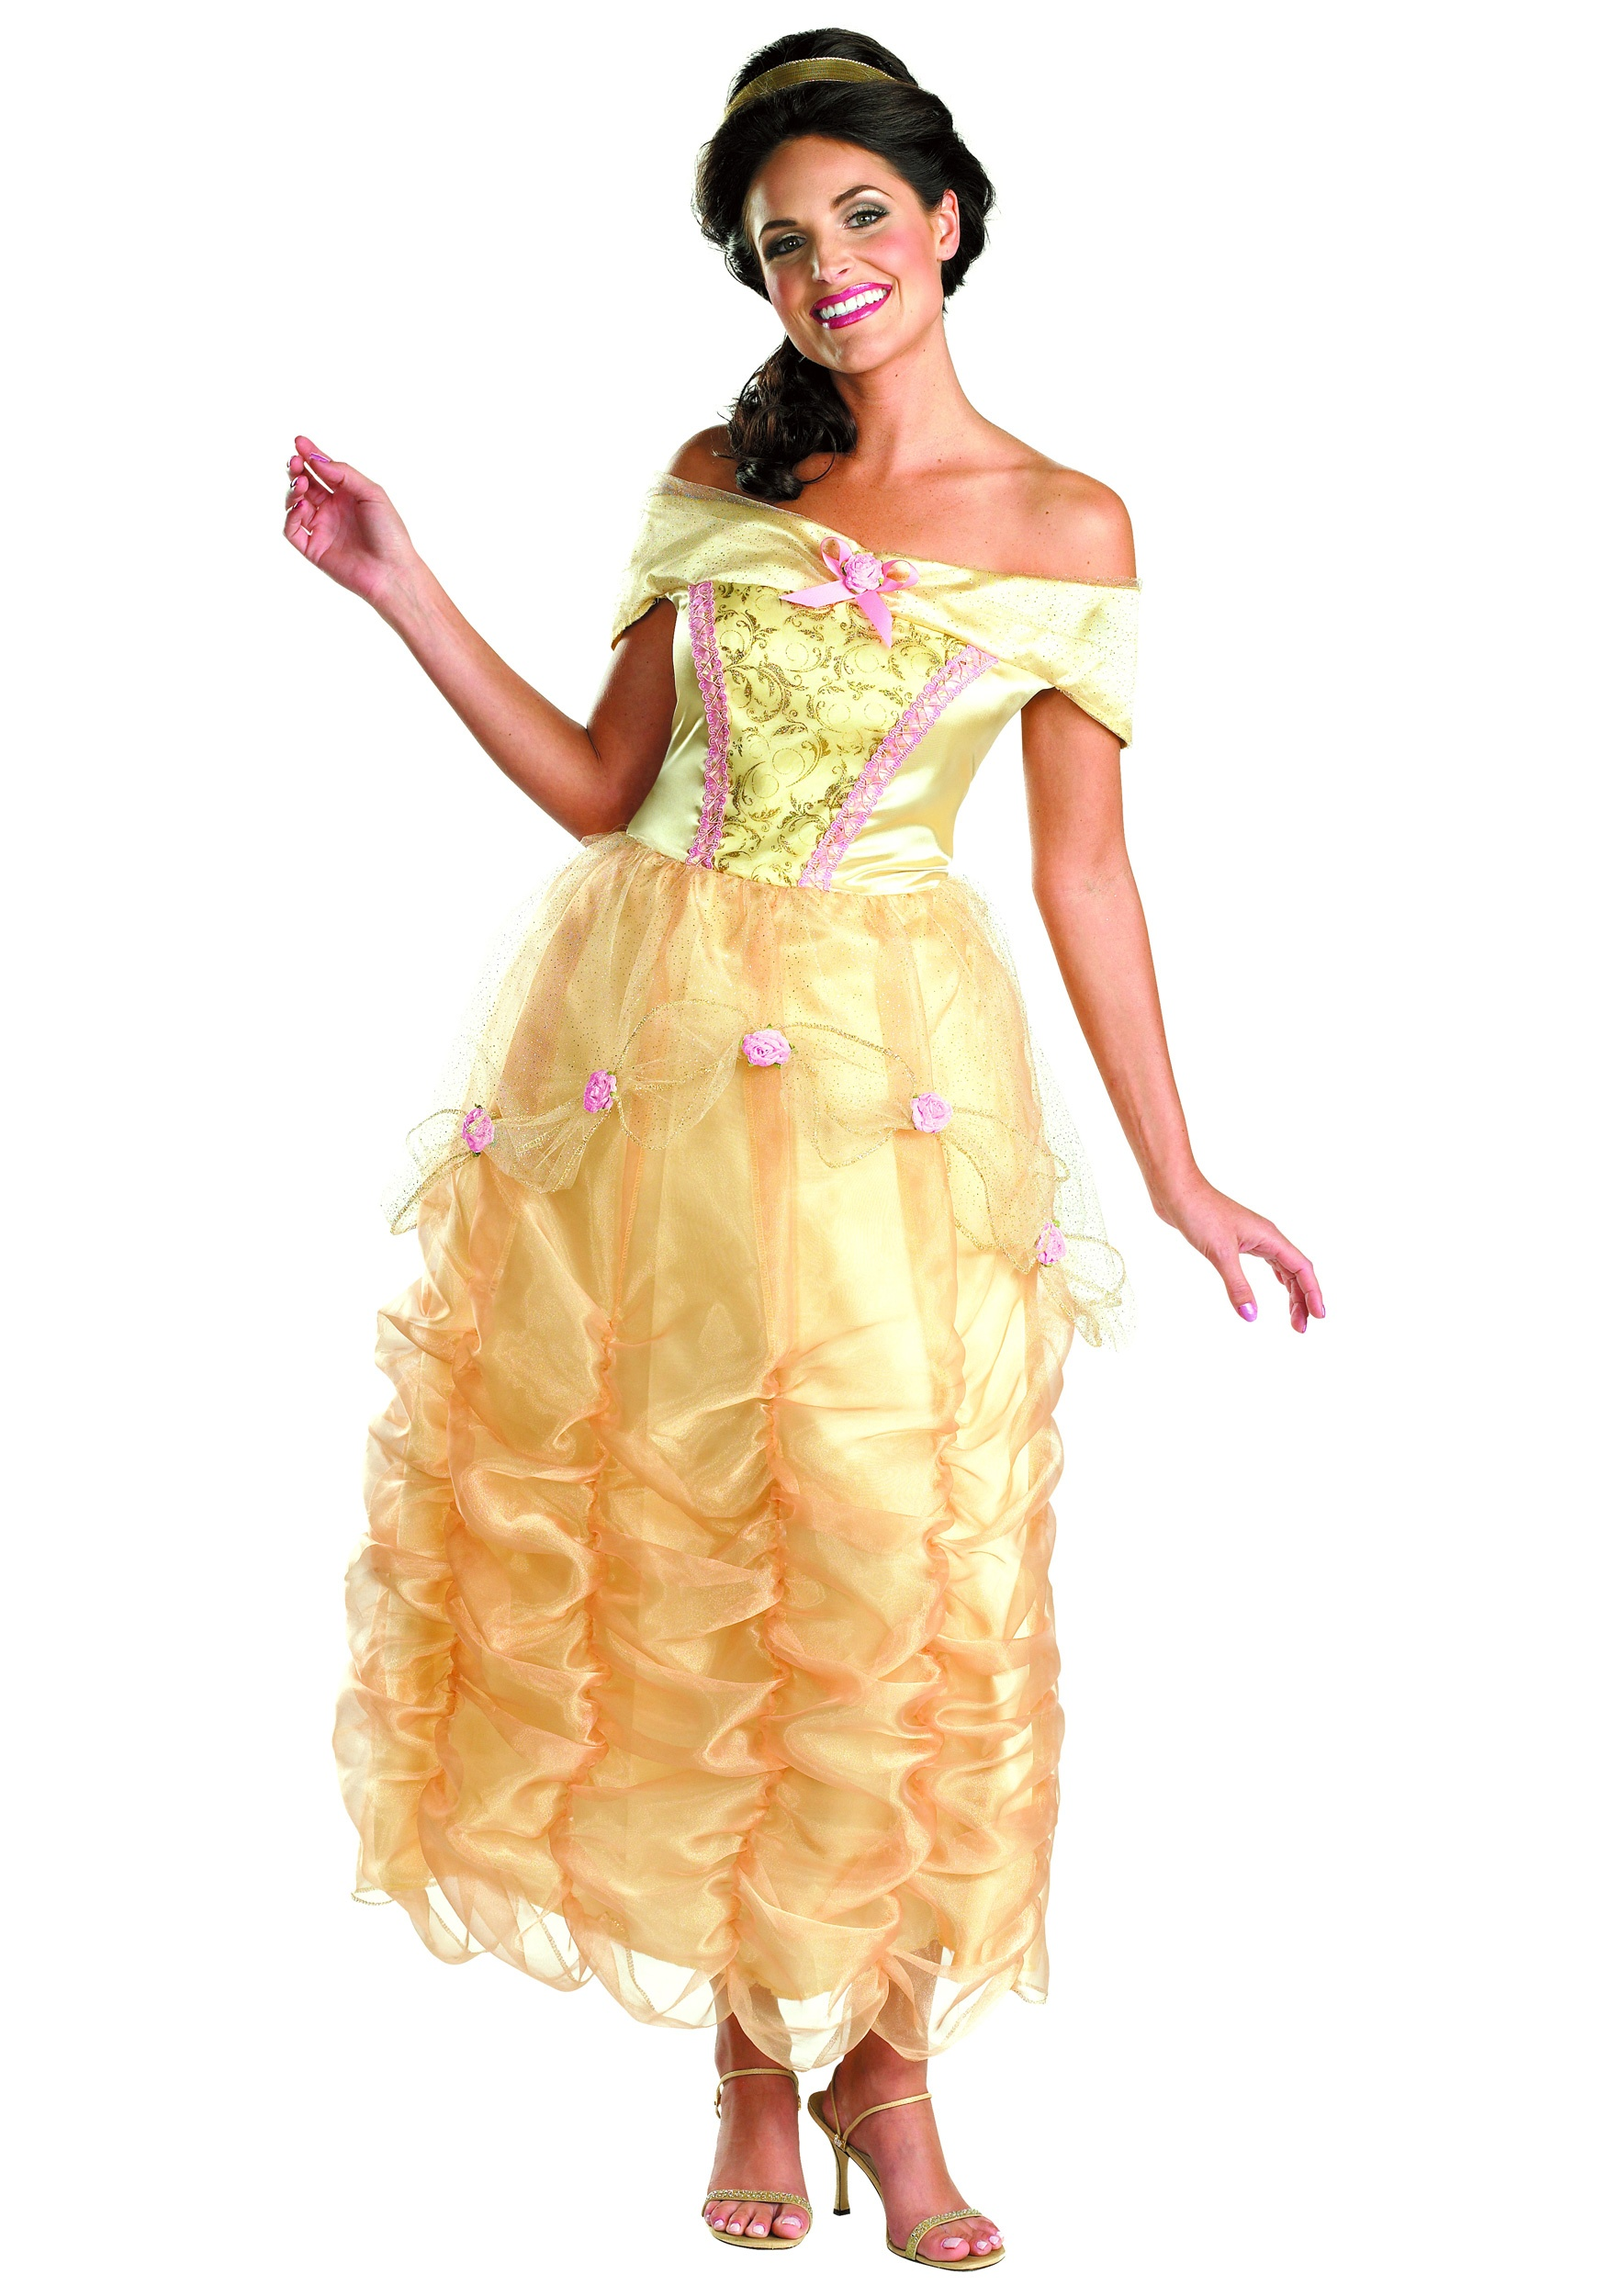 Home  gt  gt  Disney Costumes  gt  gt  Disney Princess Costumes  gt  gt  Belle Costume    Princess Belle Costume